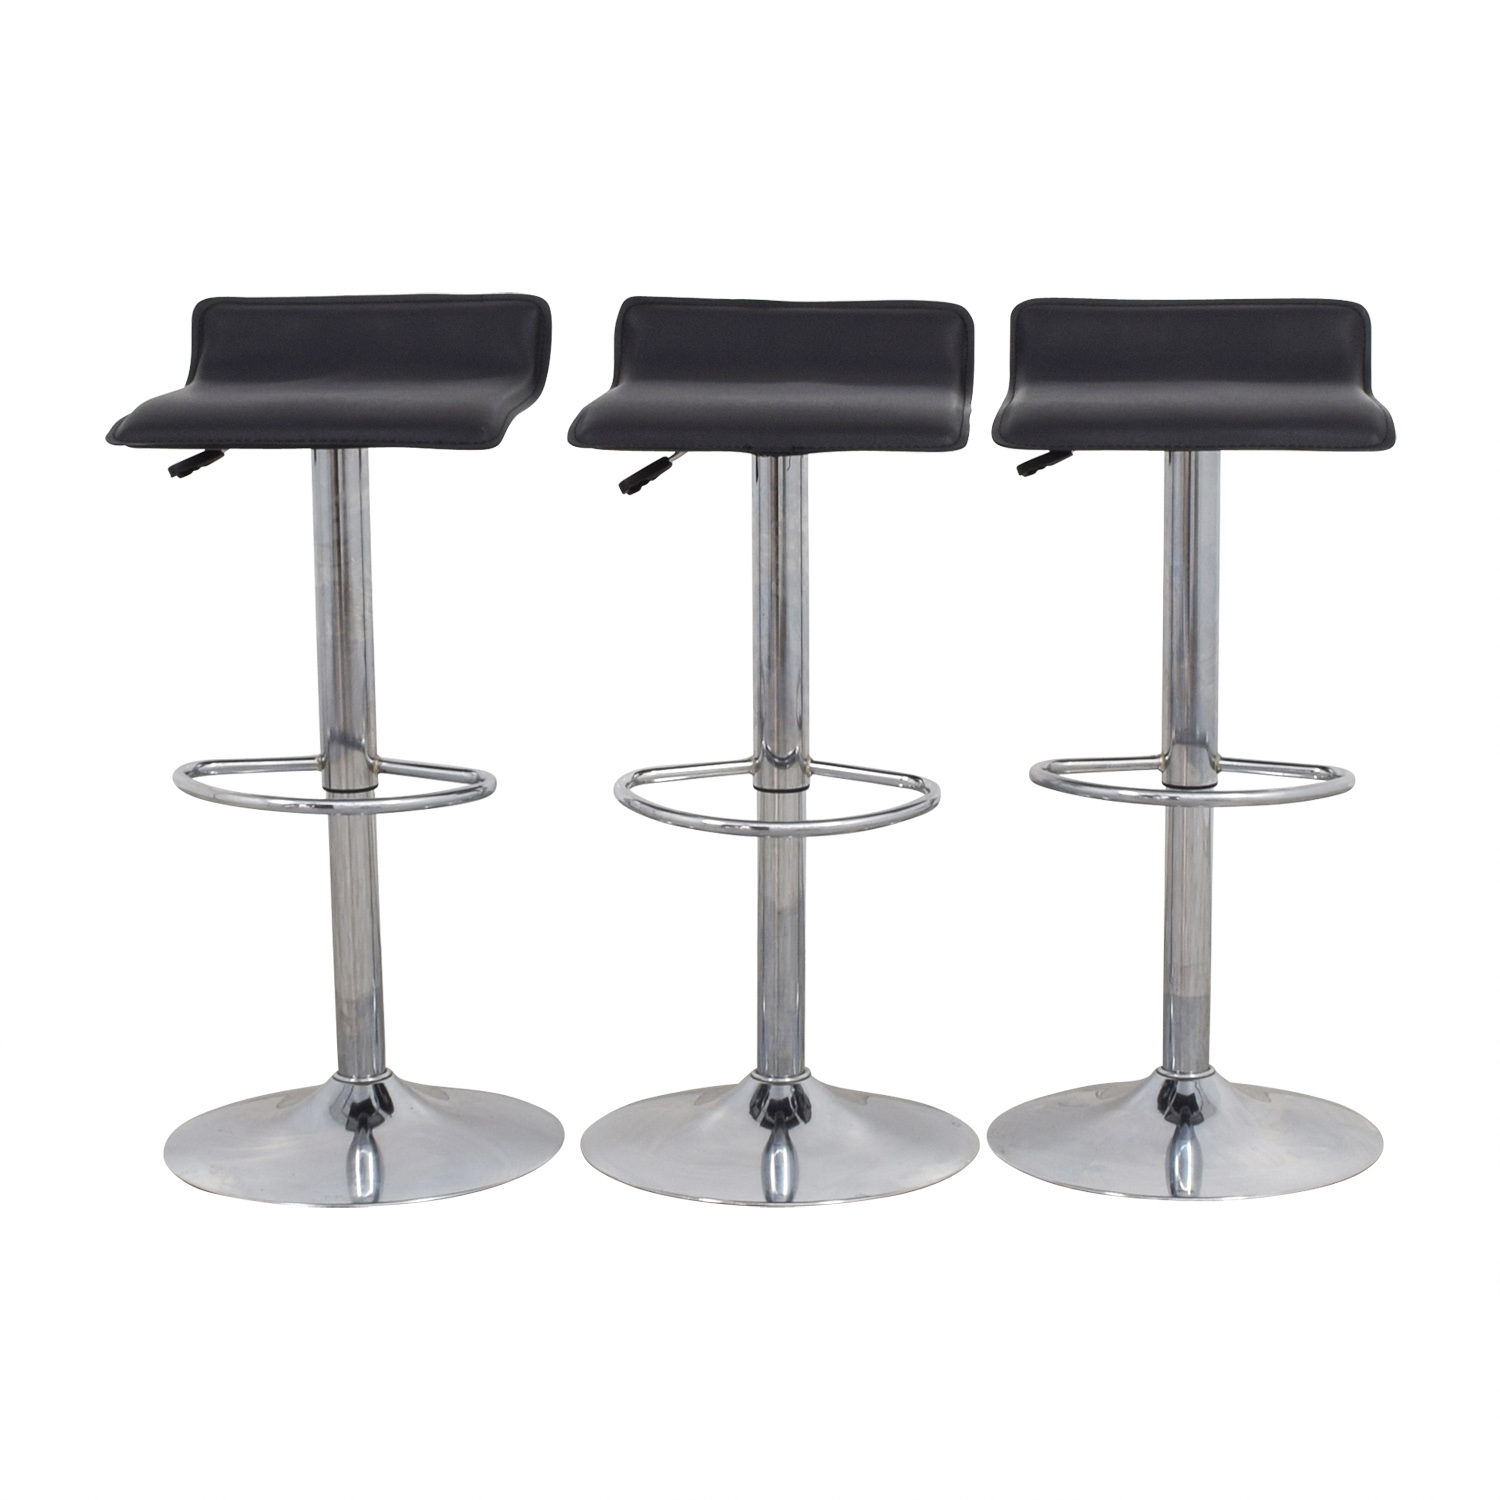 shop Target Target Black Adjustable Bar Stools online